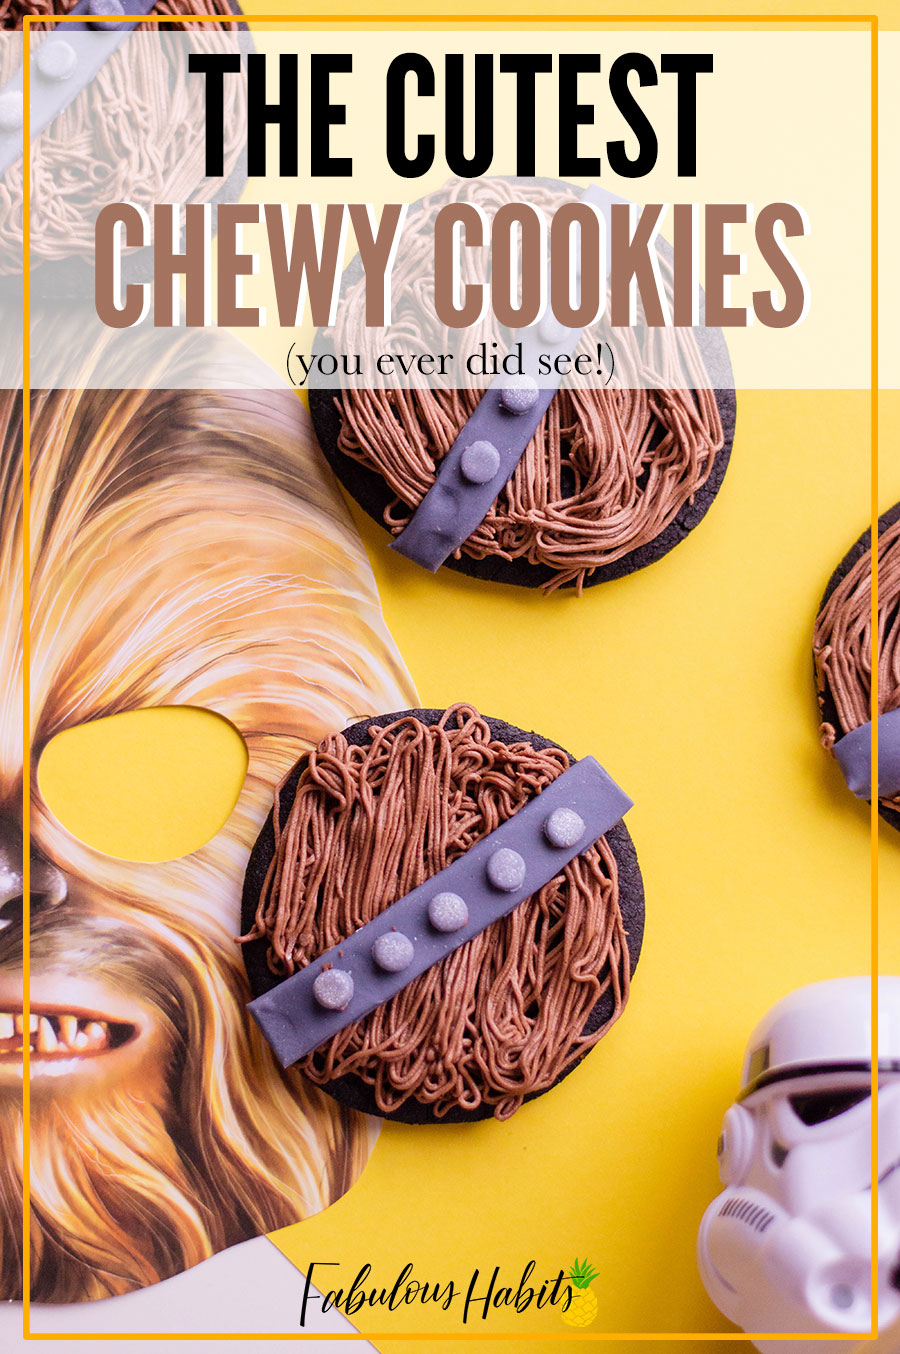 These are seriously the cutest Chewbacca cookies you'll ever see. Complete with buttercream fur and a fondant sash, these treats are perfect for any Star Wars fan. #chewbaccacookies